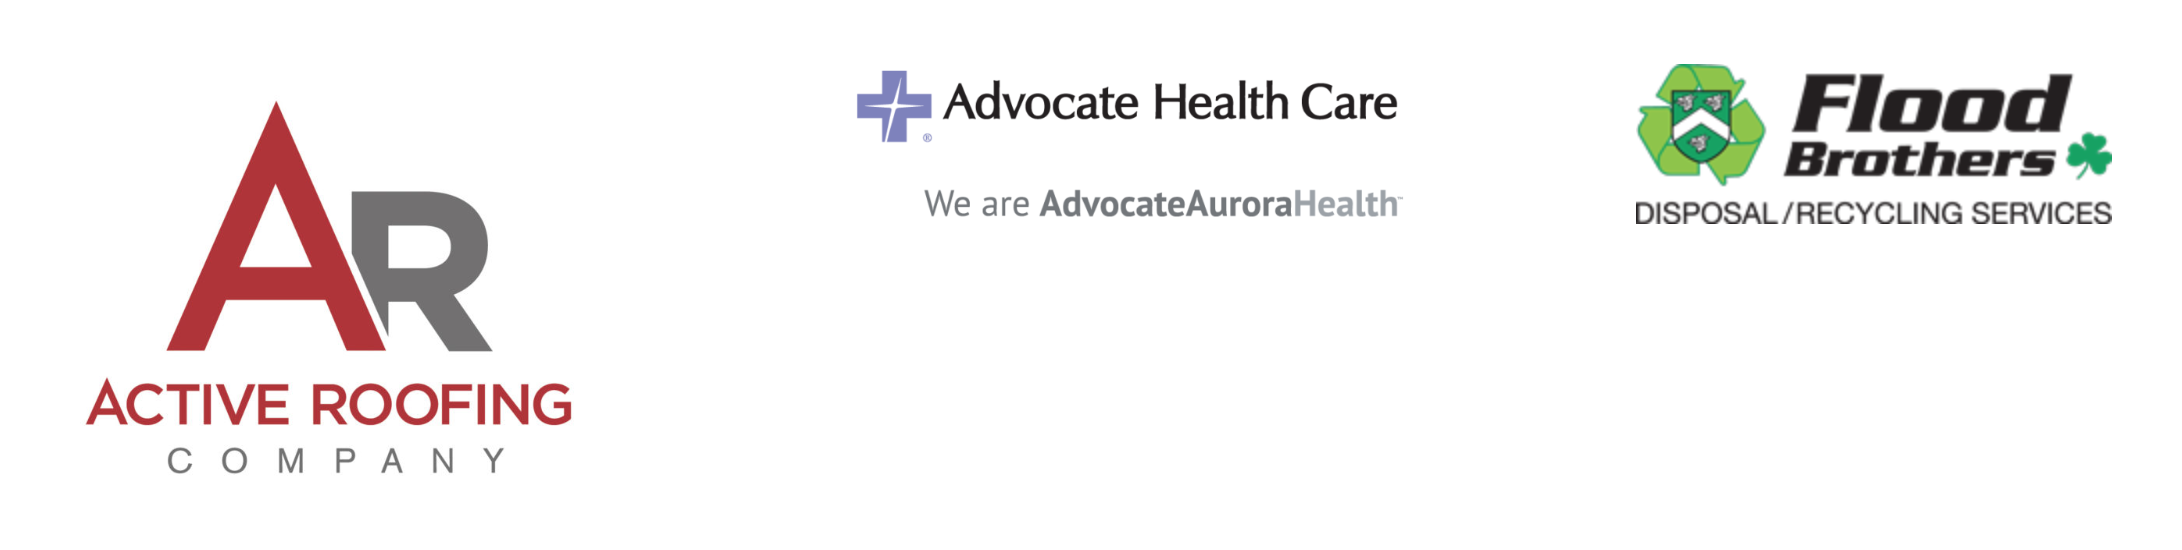 Active Roofing Advocate Healthcare and Flood Brothers